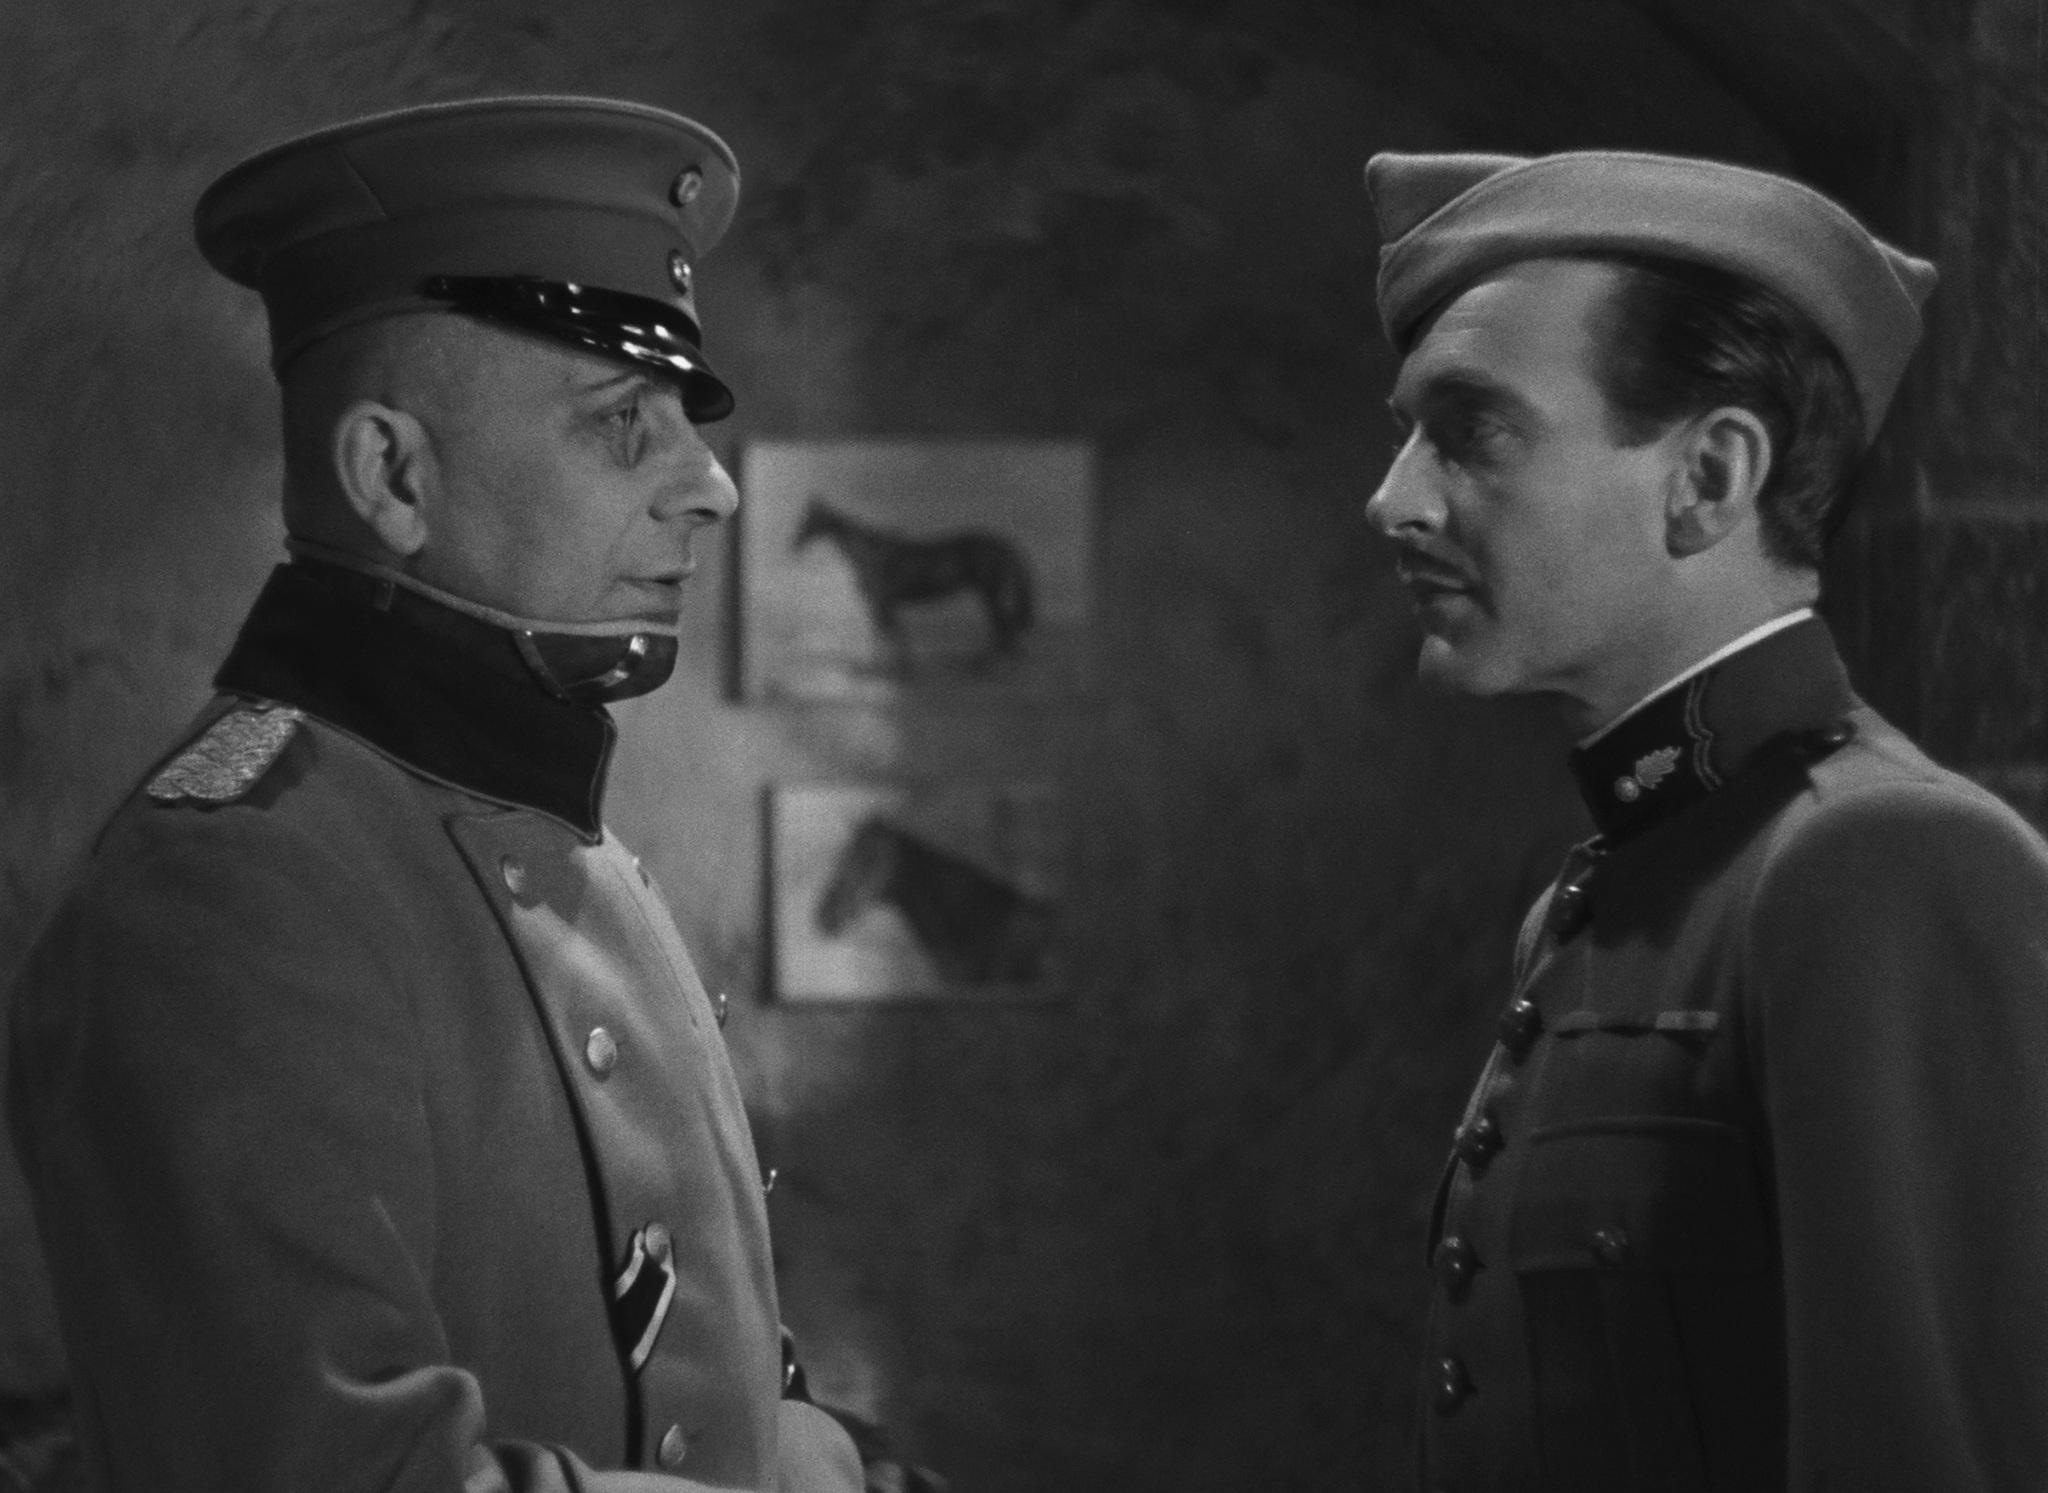 Serving warring flags, but finding amity in their common aristocratic roots, the German Captain von Rauffenstein (Erich von Stroheim) chats with his French prisoner,Captain de Boeldieu (Pierre Fresnay), in Jean Renoir's anti-war drama, The Grand Illusion .